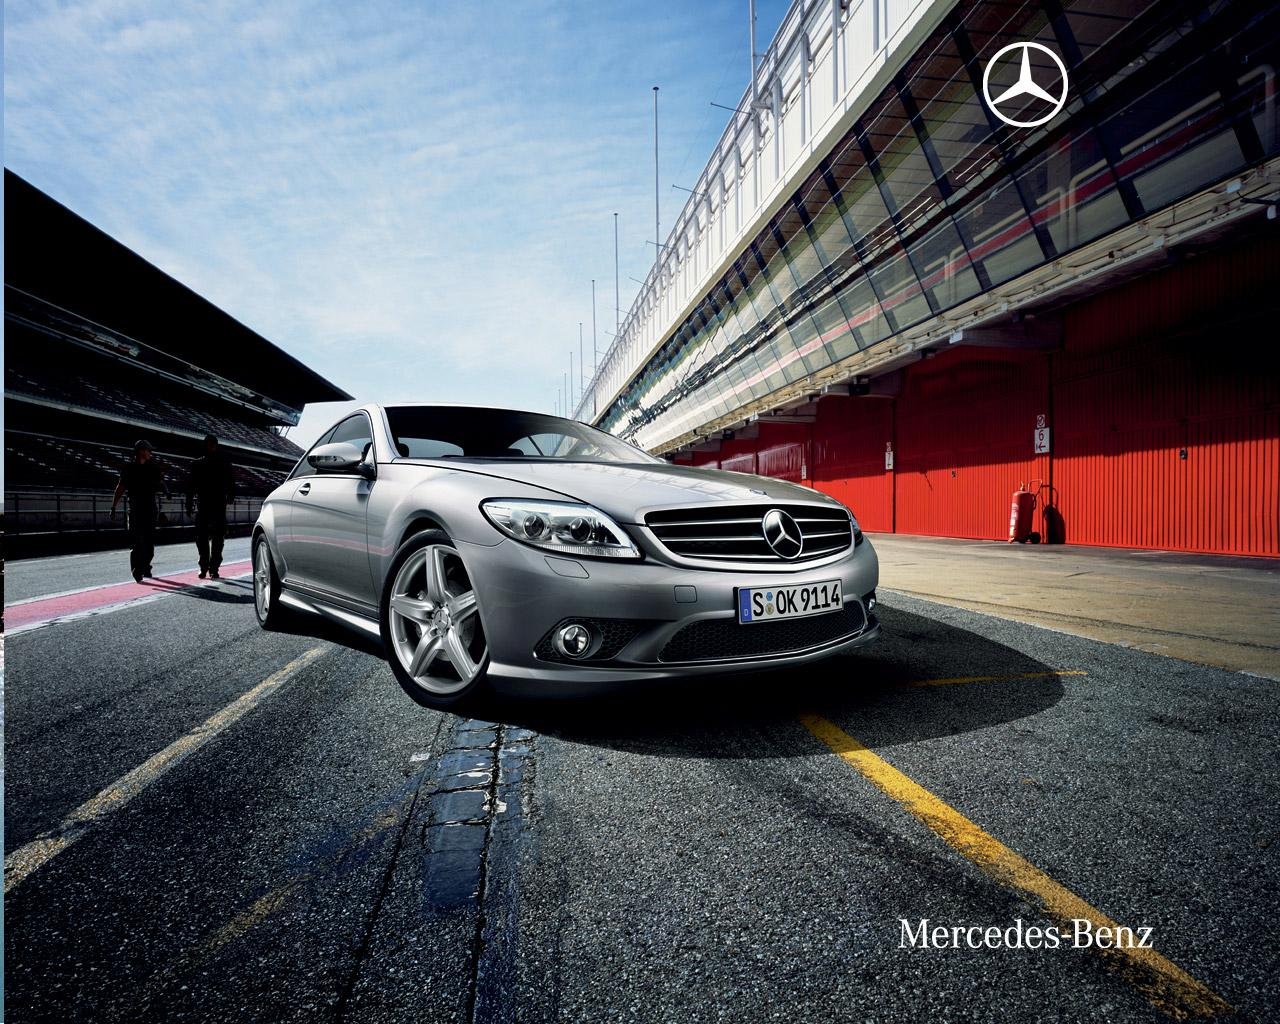 2009 mercedes benz c216 cl cl coupe gallery wallpaper 03 for Mercedes benz club